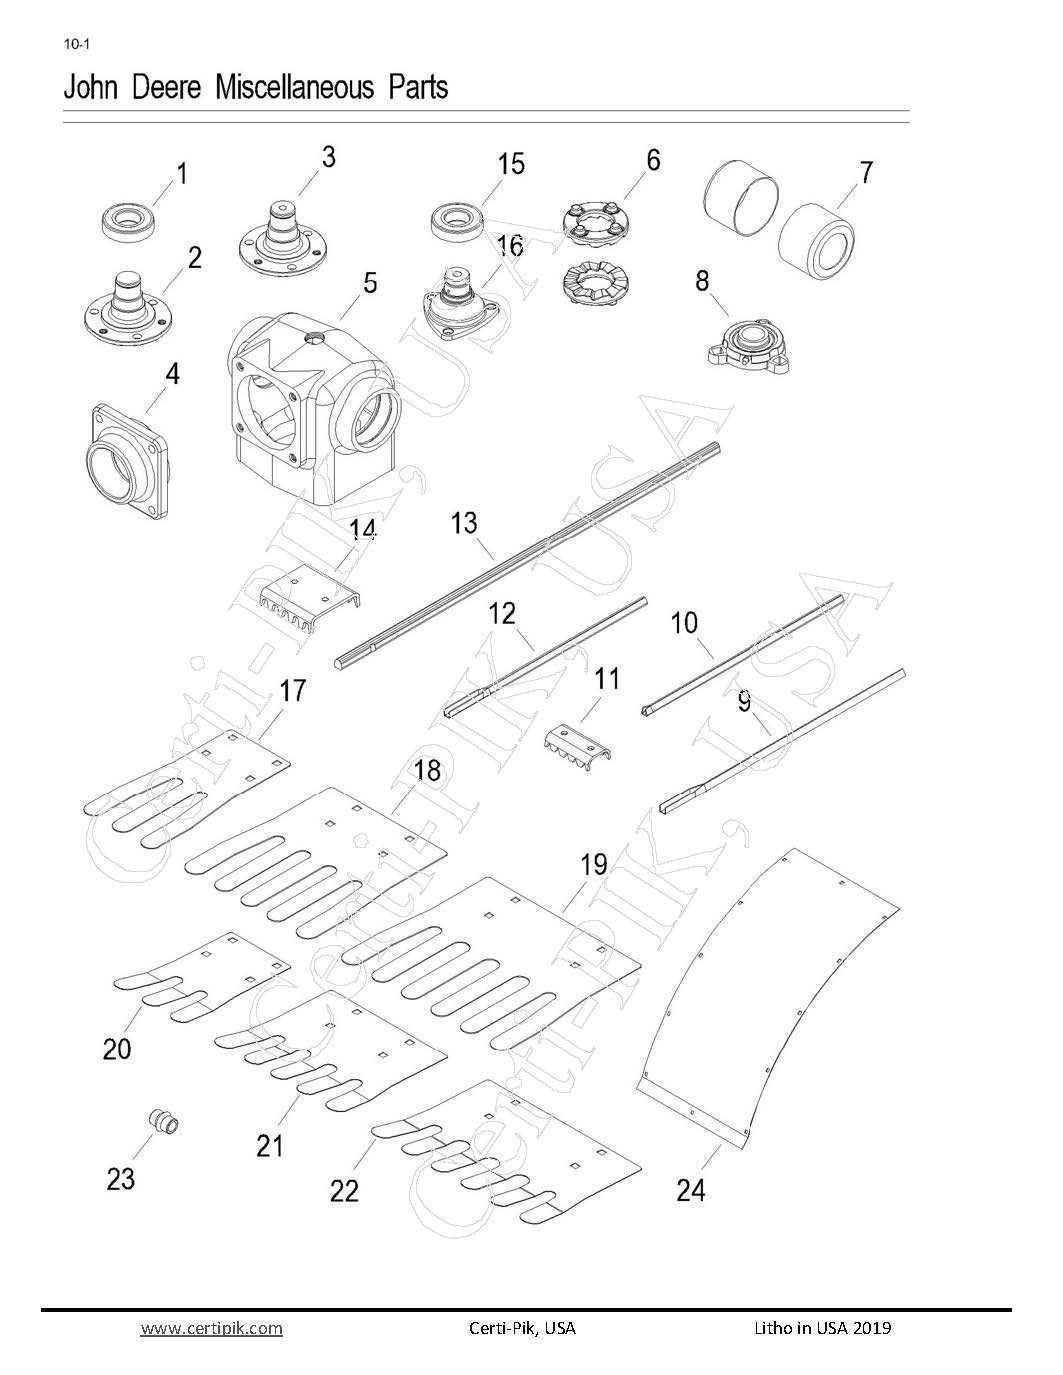 72787P-10 - John Deere Miscellaneous Parts